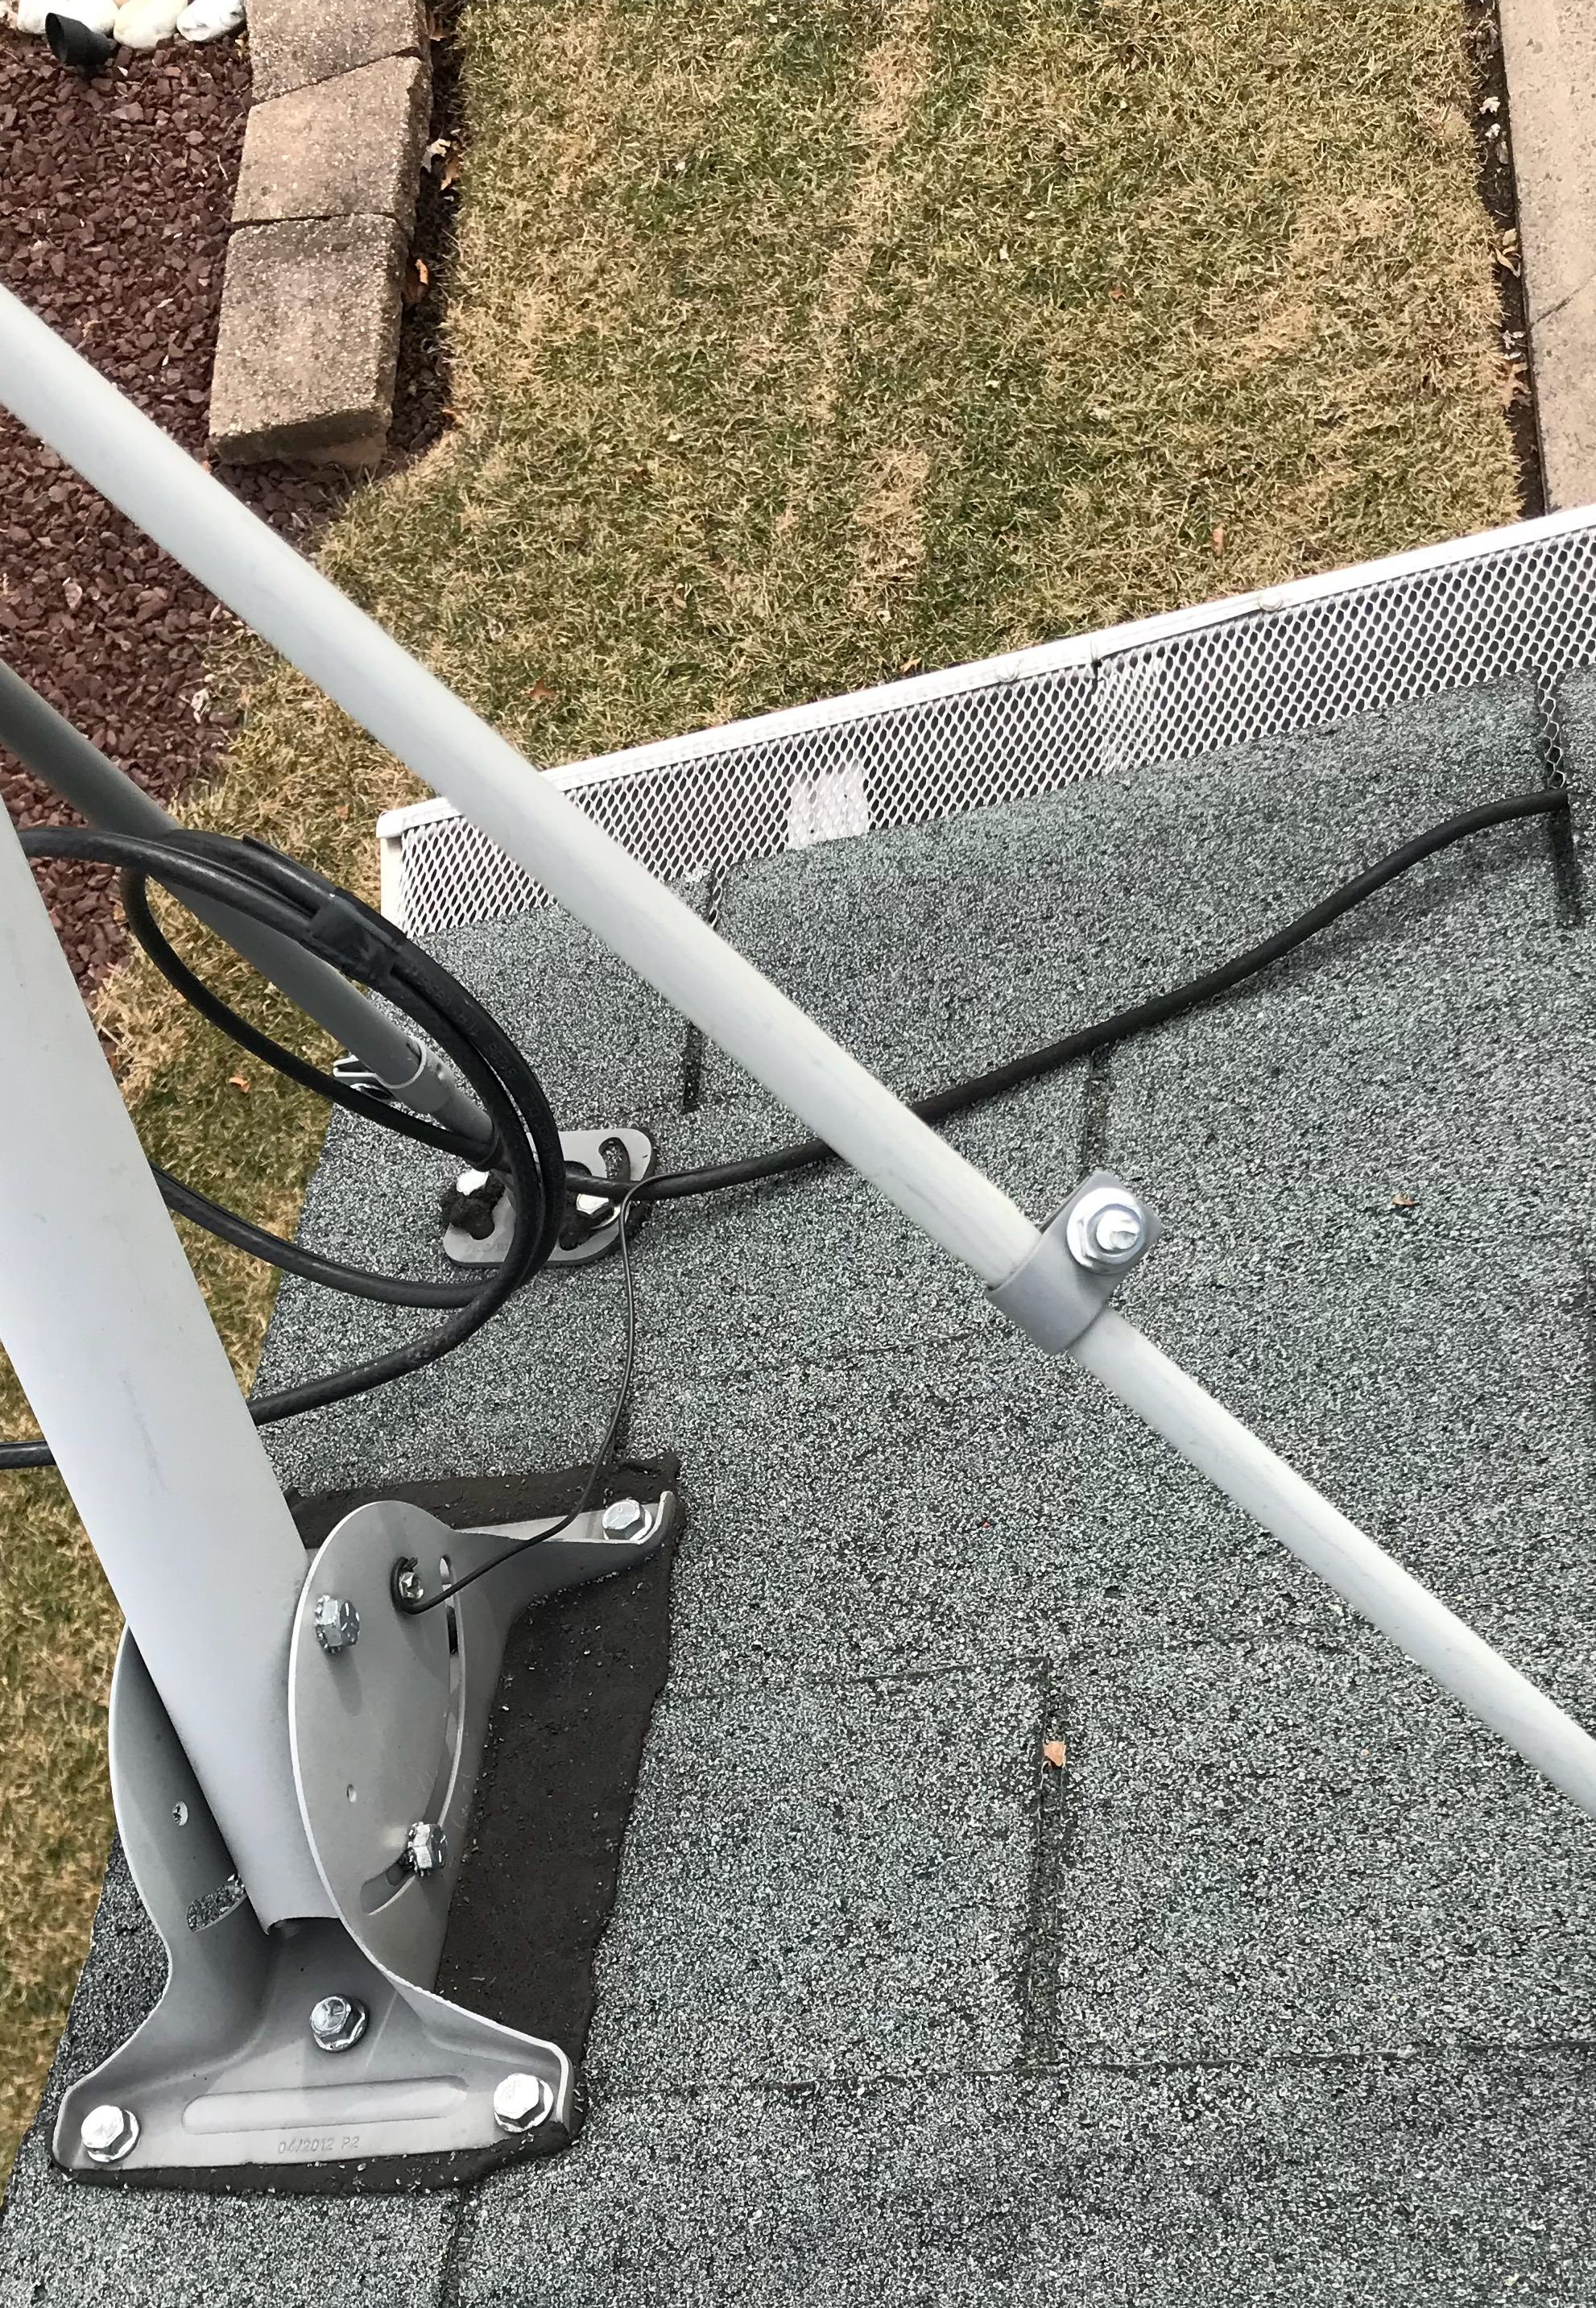 that is a ground wire running from the coax cable to the nut on satellite dish mounting frame right may i assume this rig is properly grounded  [ 1982 x 2866 Pixel ]